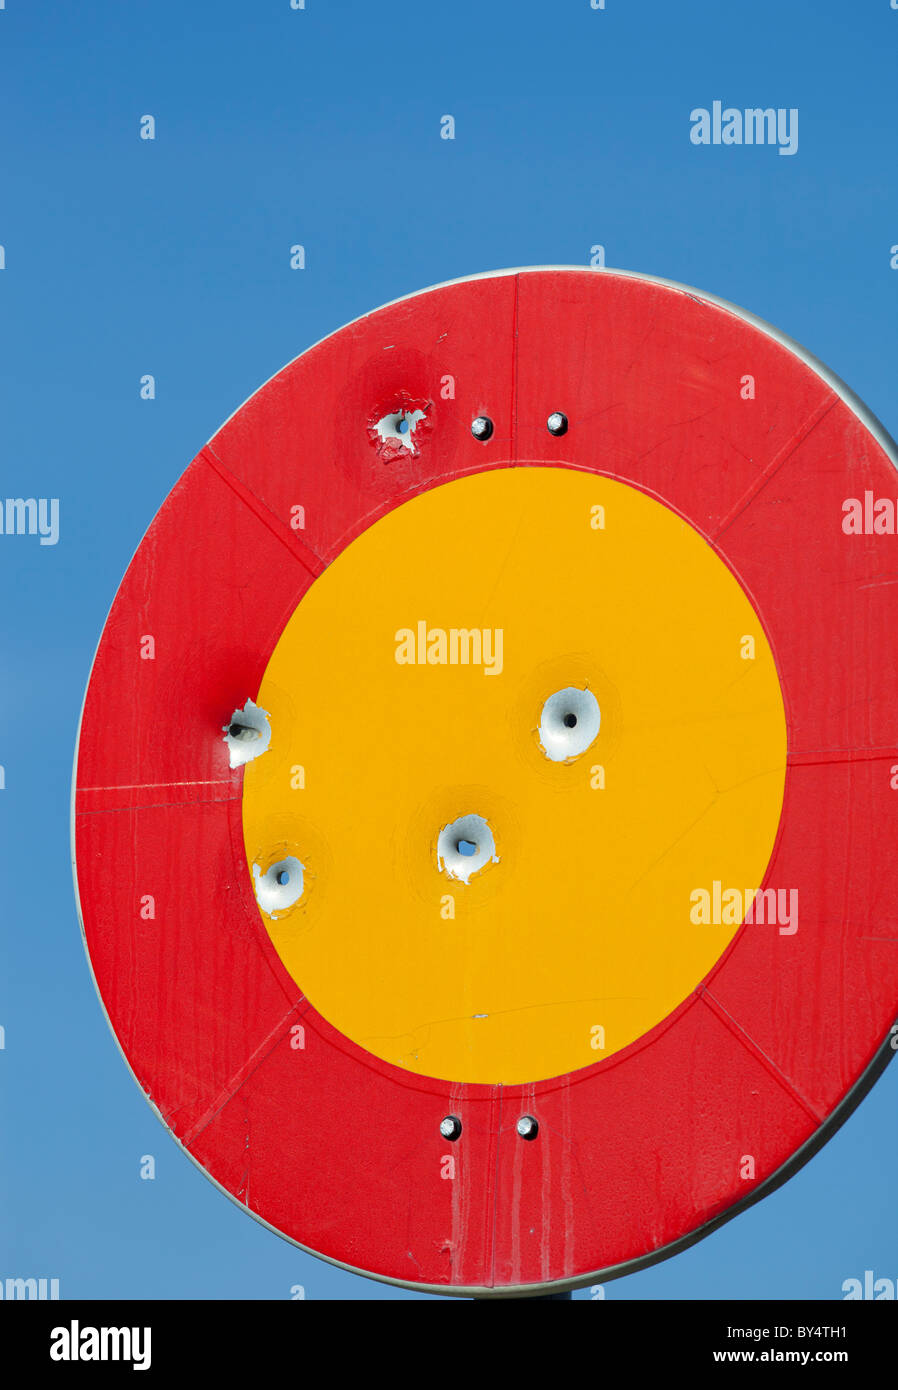 Bullet holes on round colorful traffic sign - Stock Image